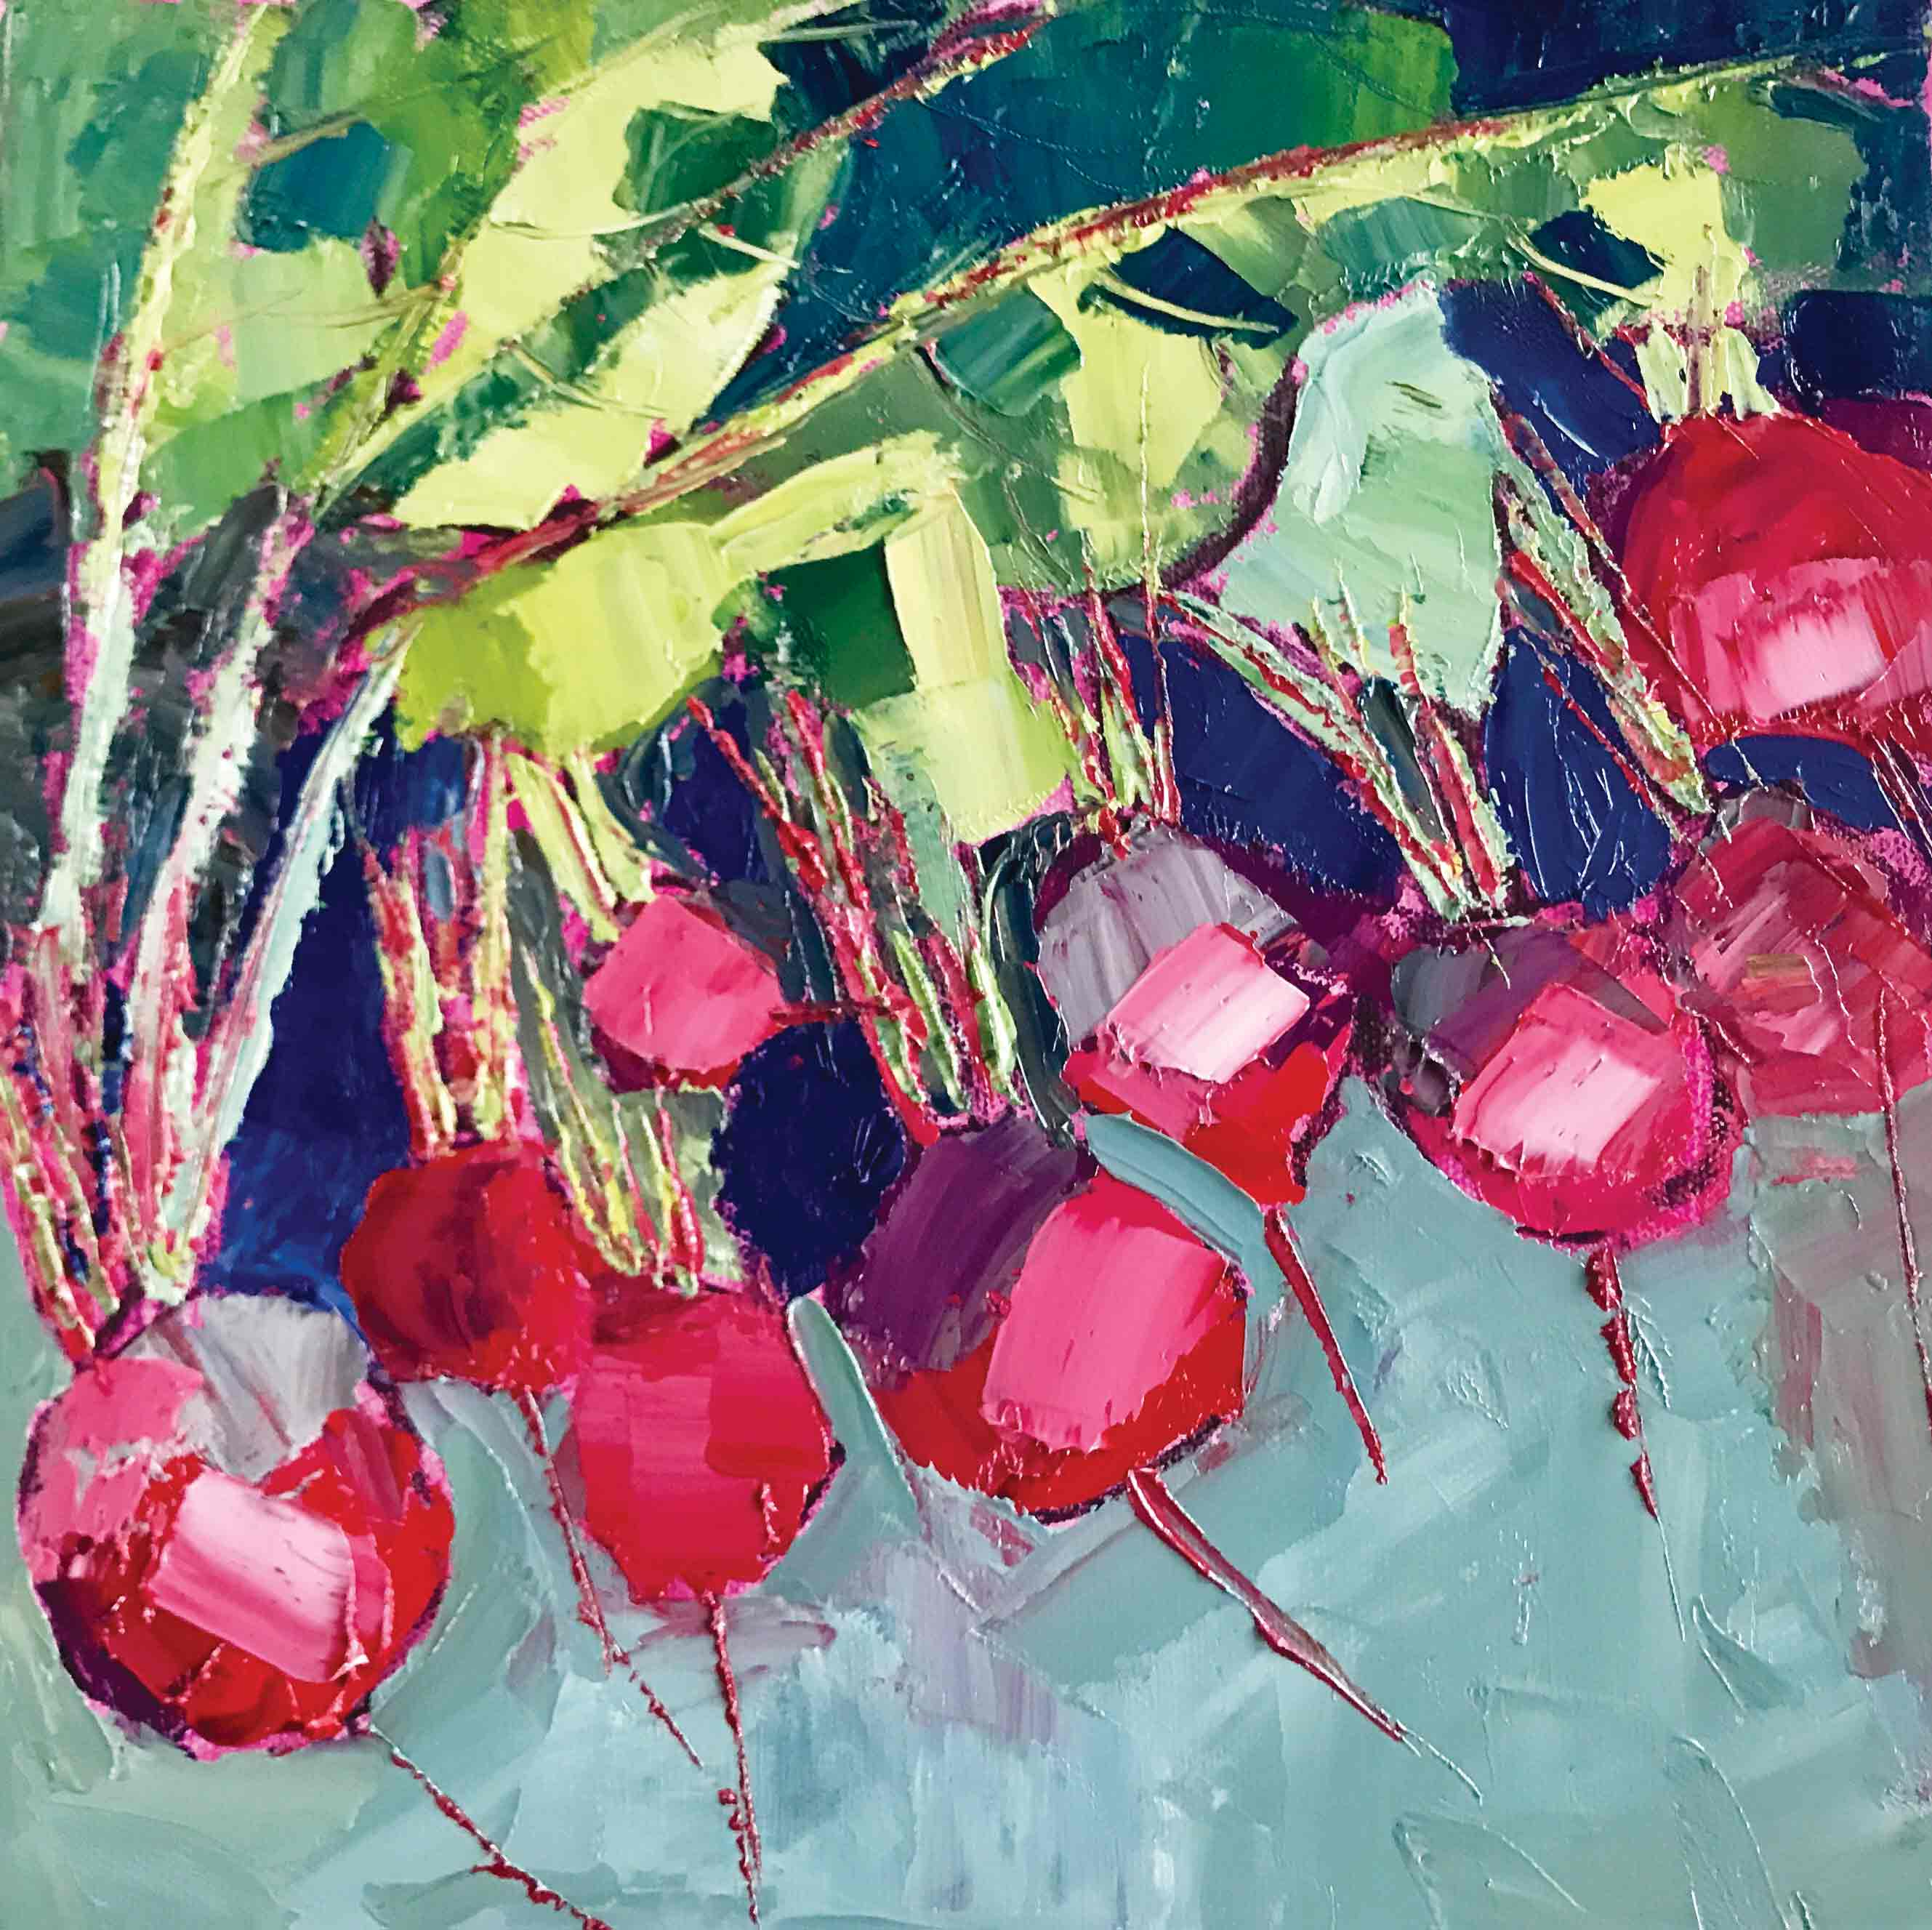 Art Greeting Card by Colette Clegg, Chioggia Beets, Oil painting, Beets